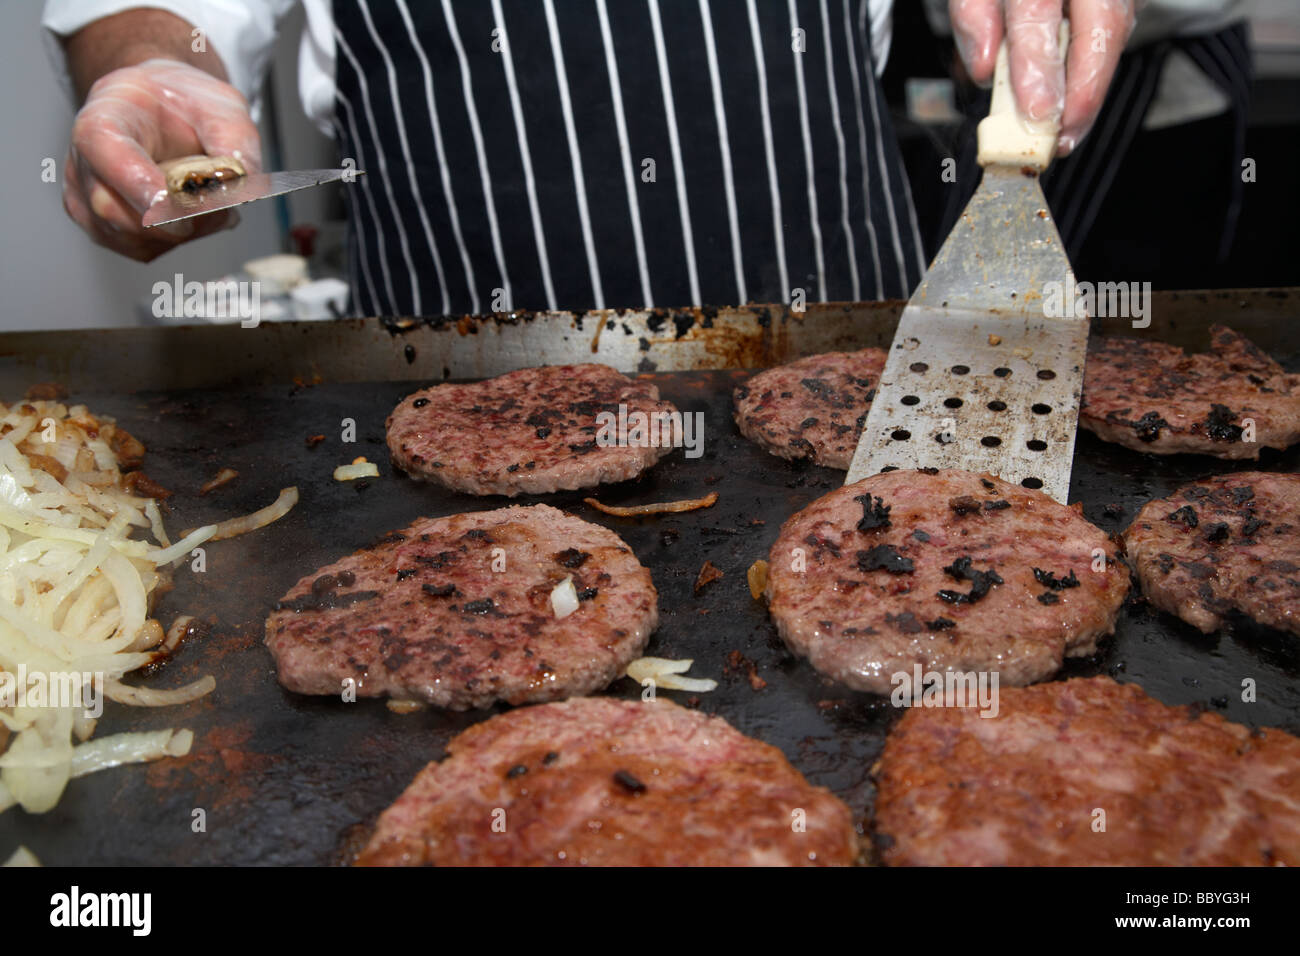 Chef Cooking Hamburgers On An Open Grill Hotplate For Sale